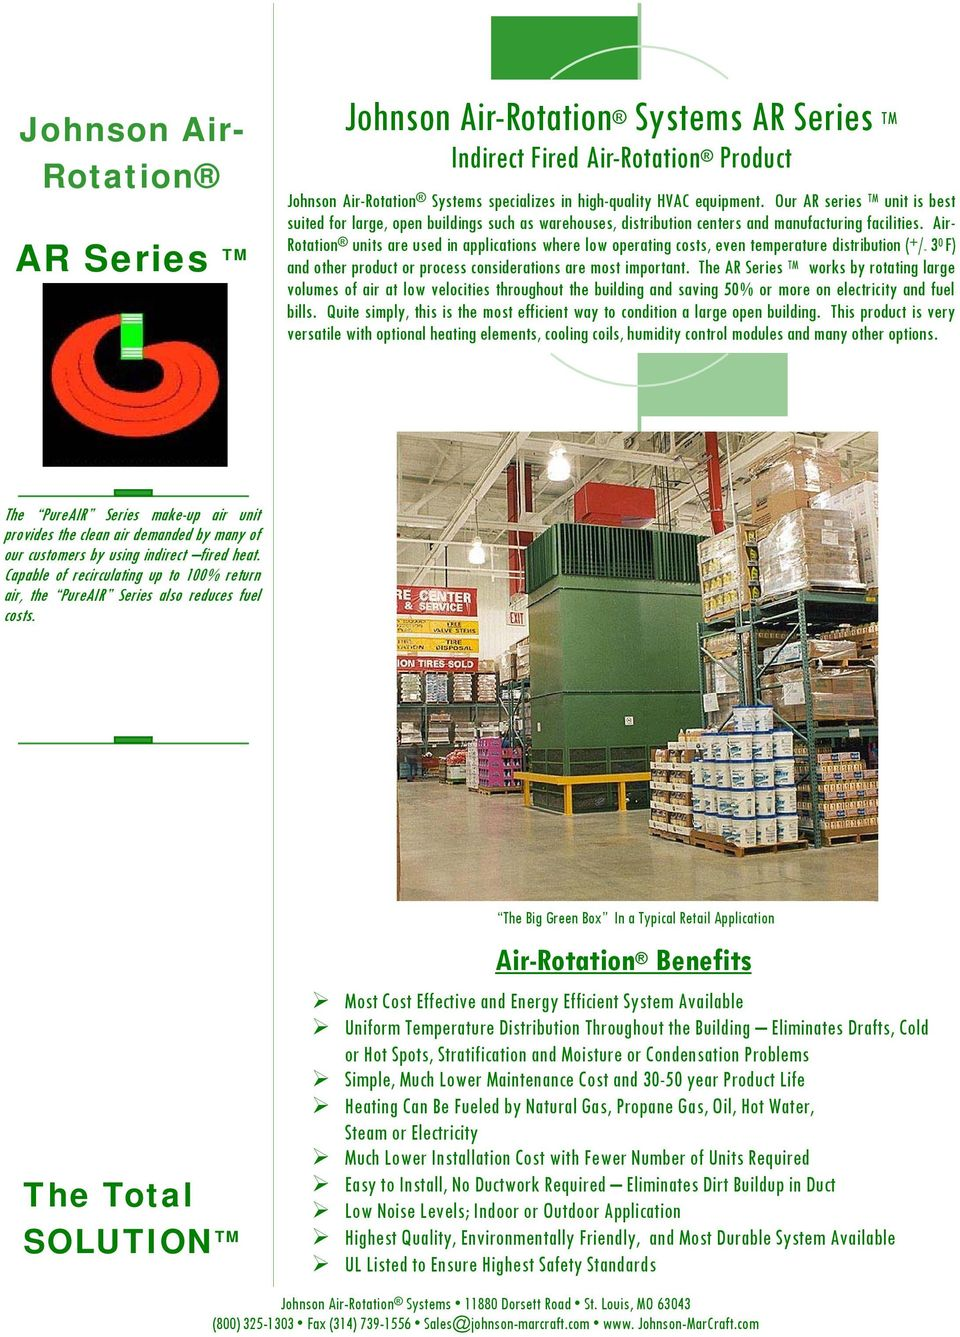 Air- Rotation units are used in applications where low operating costs, even temperature distribution ( + /- 3 0 F) and other product or process considerations are most important.